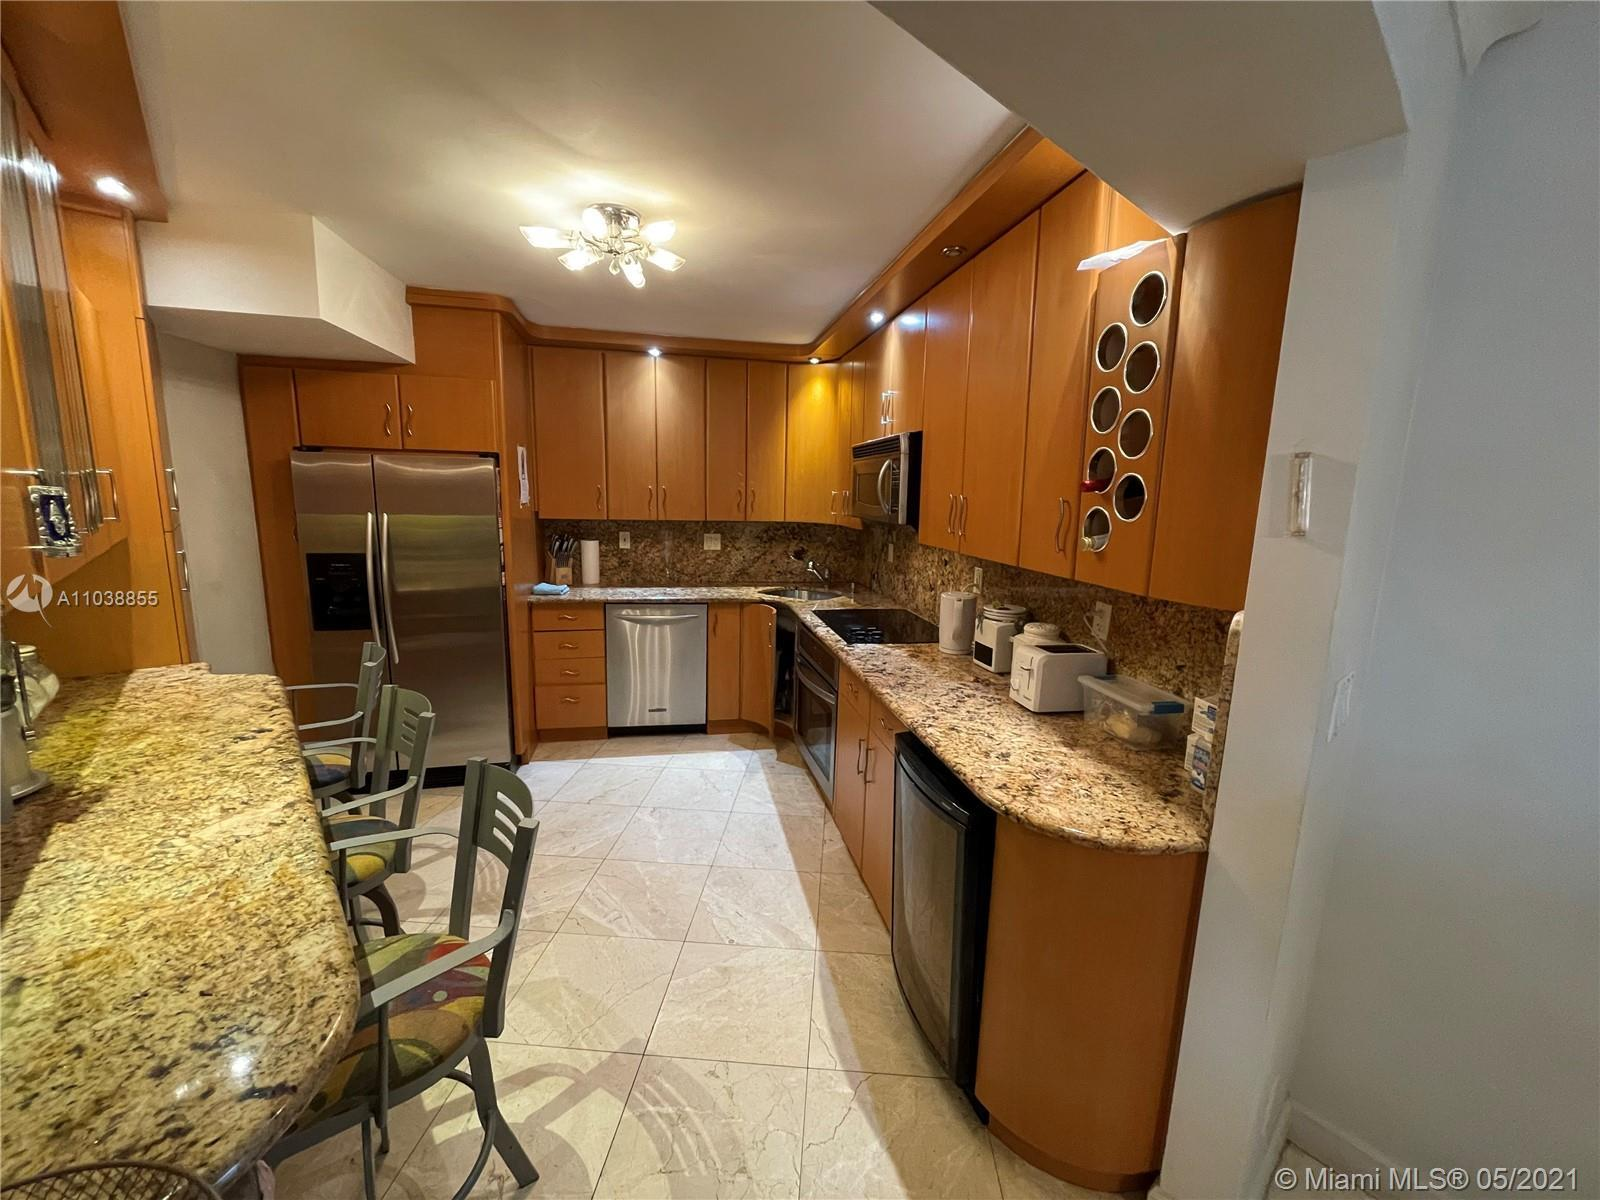 Gorgeous 2/2 Split bedrooms, oceanfront Building, Spacious remodeled kitchen with stainless steel ap